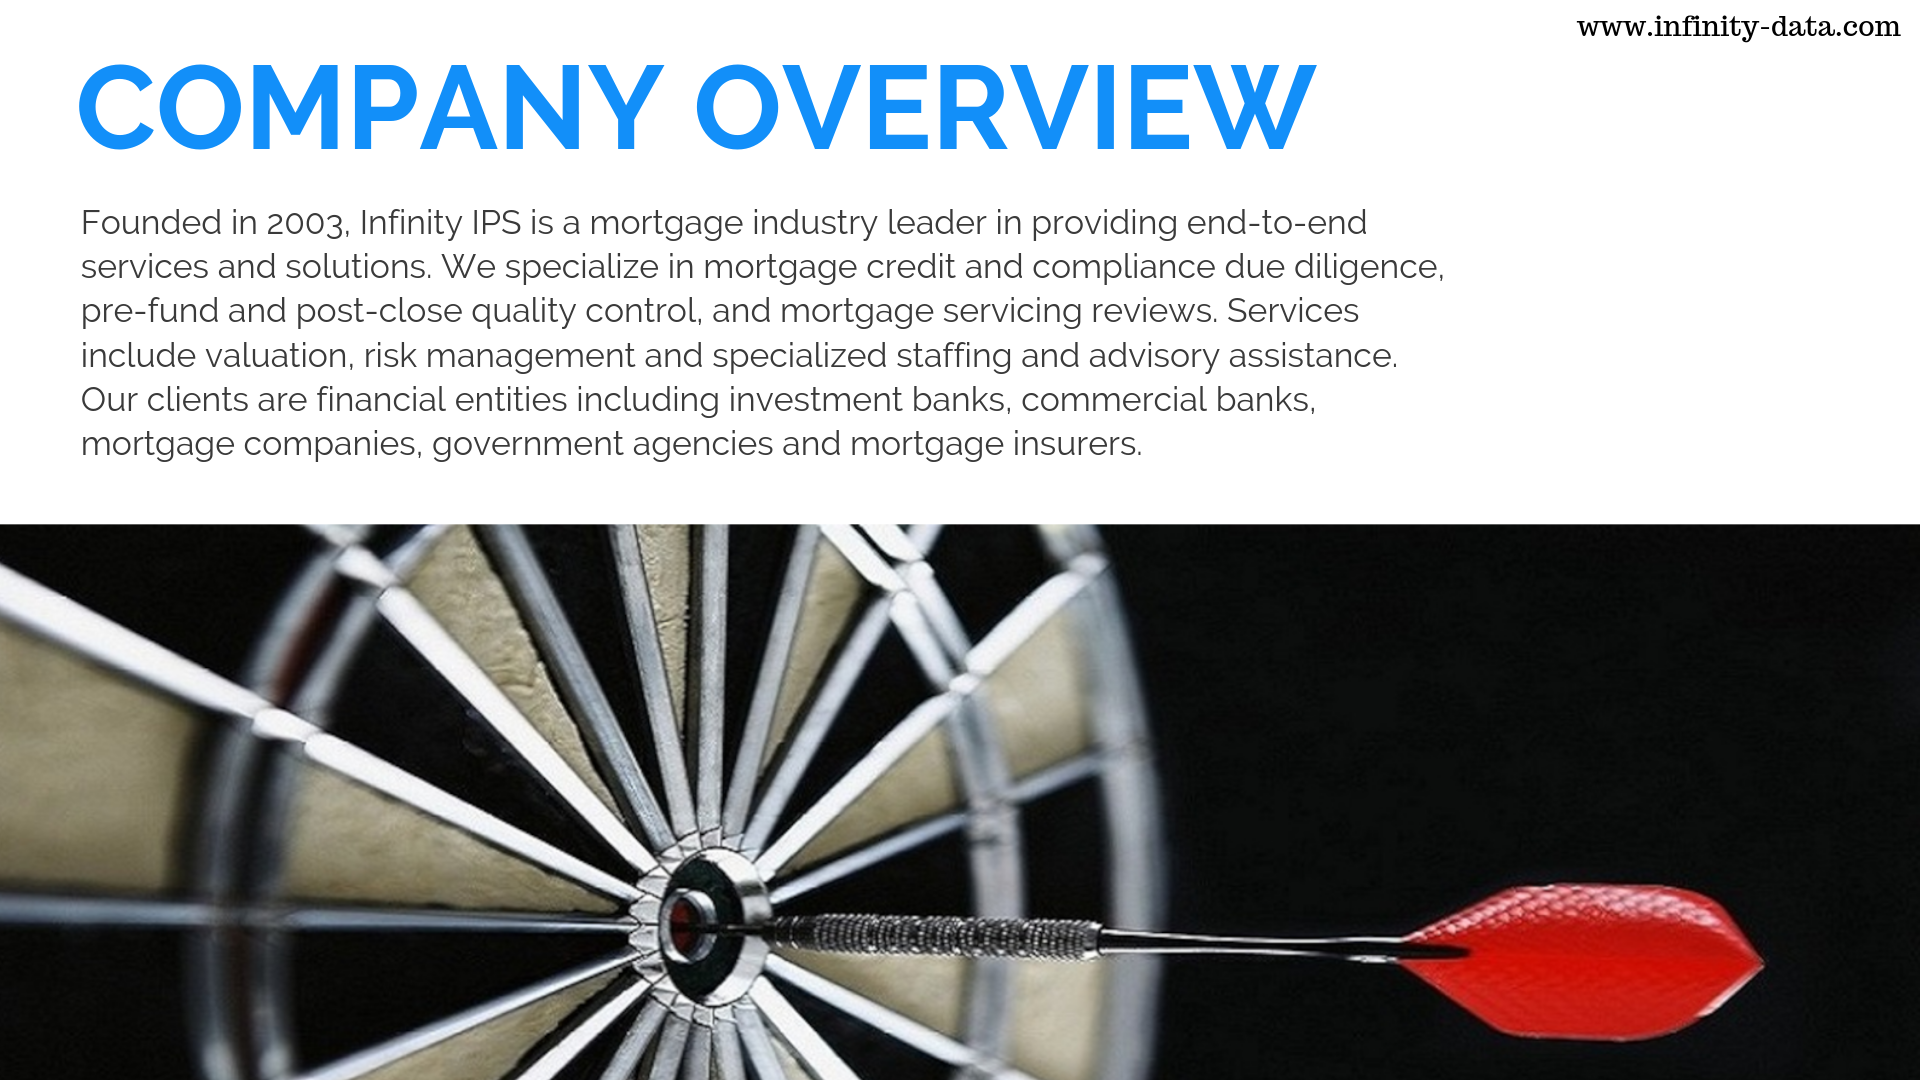 Founded In 2003 Infinity Ips Is A Mortgage Industry Leader In